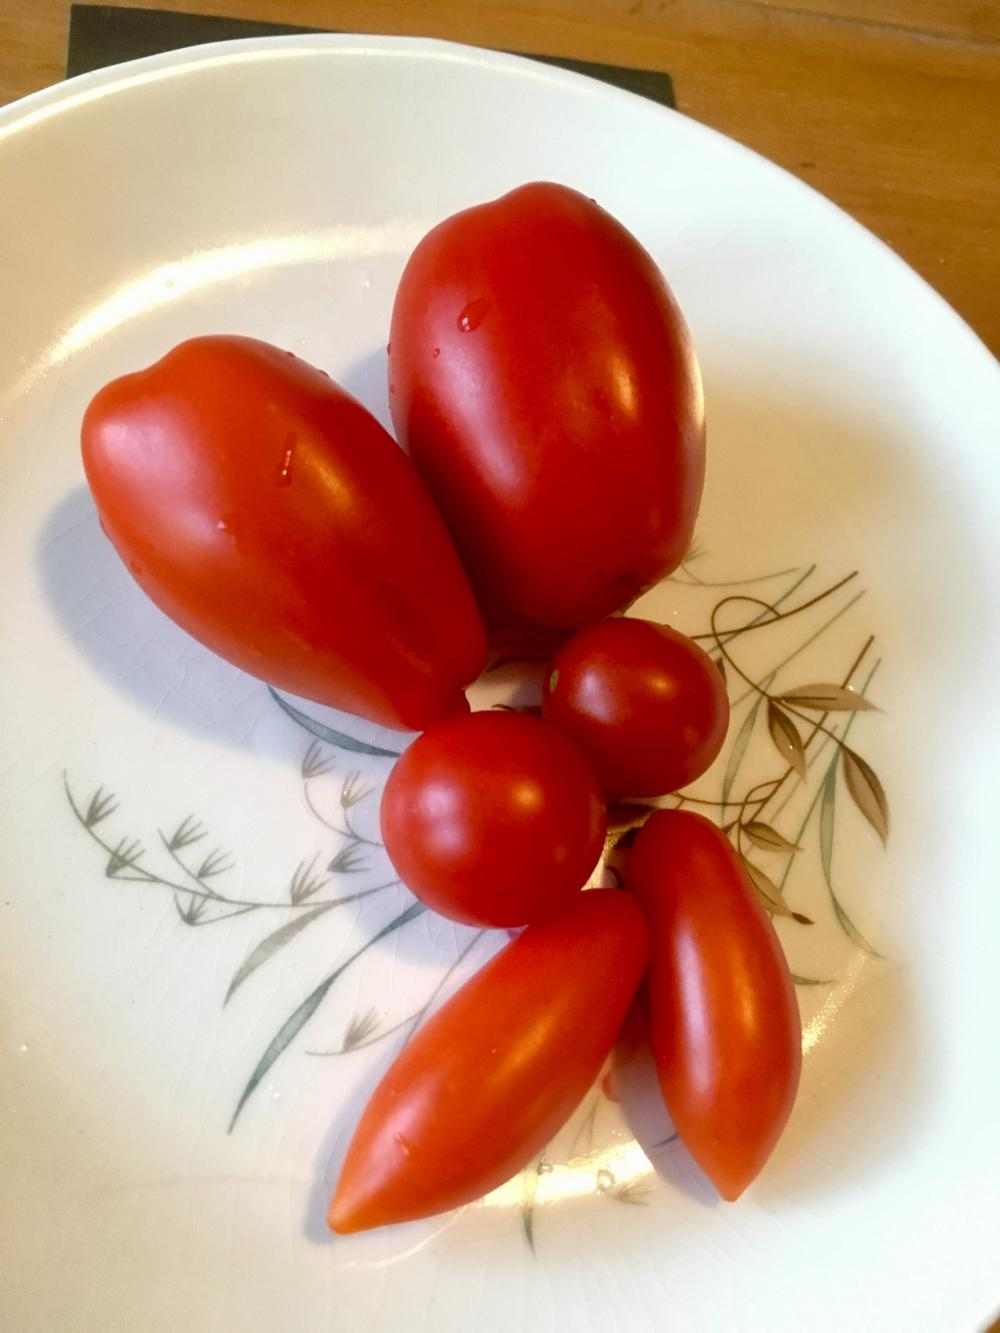 Three kinds of tomatoes